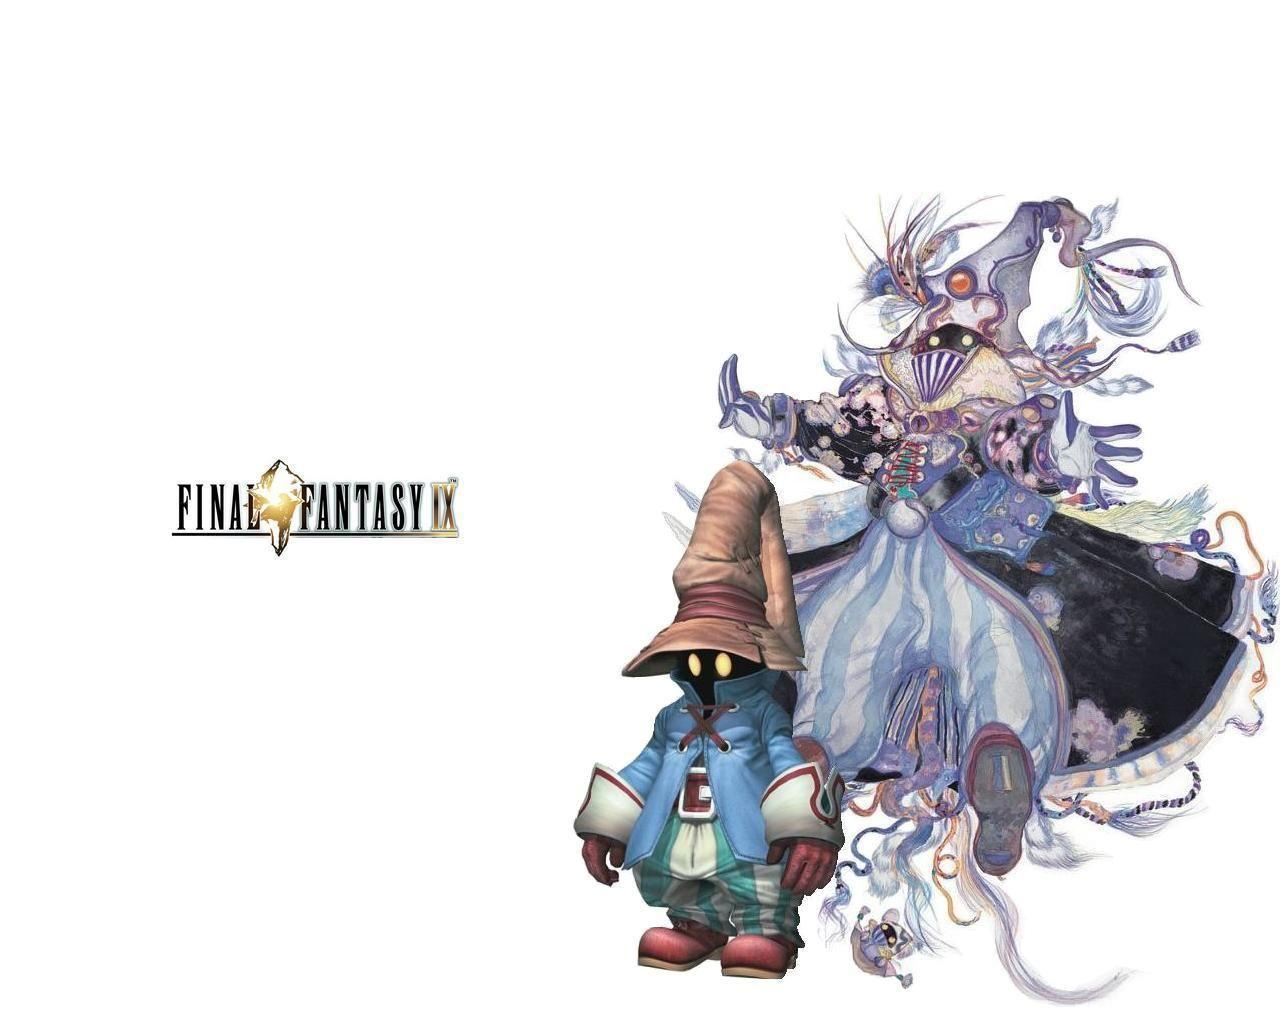 Final Fantasy Ix Wallpapers